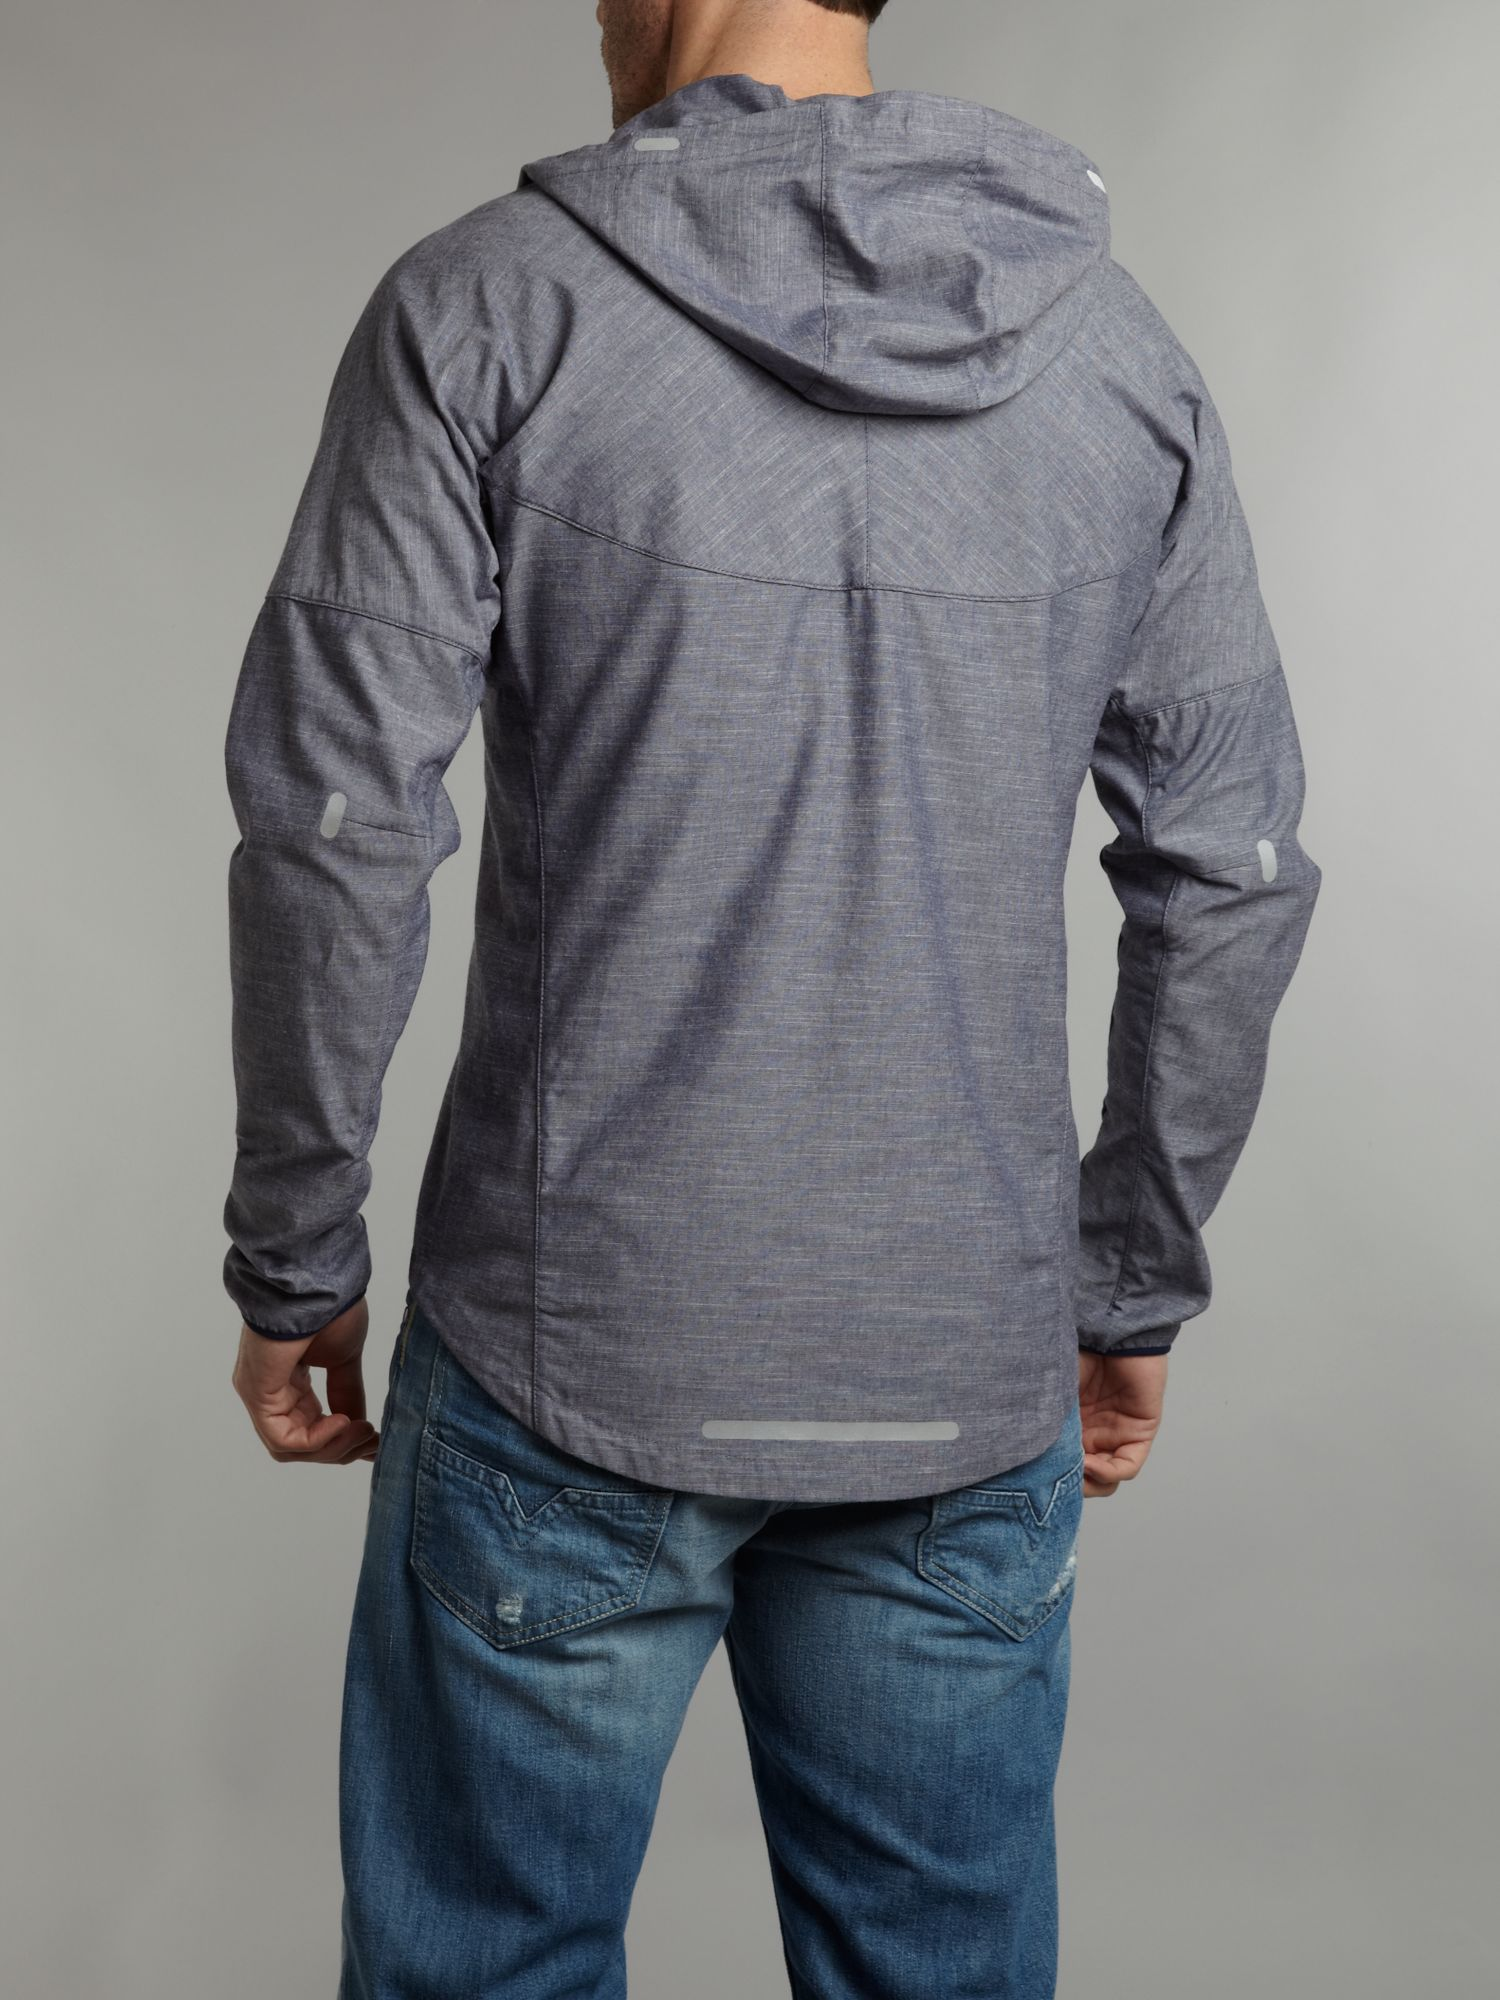 Nike Zip Up Jacket in Chambray (Grey) for Men